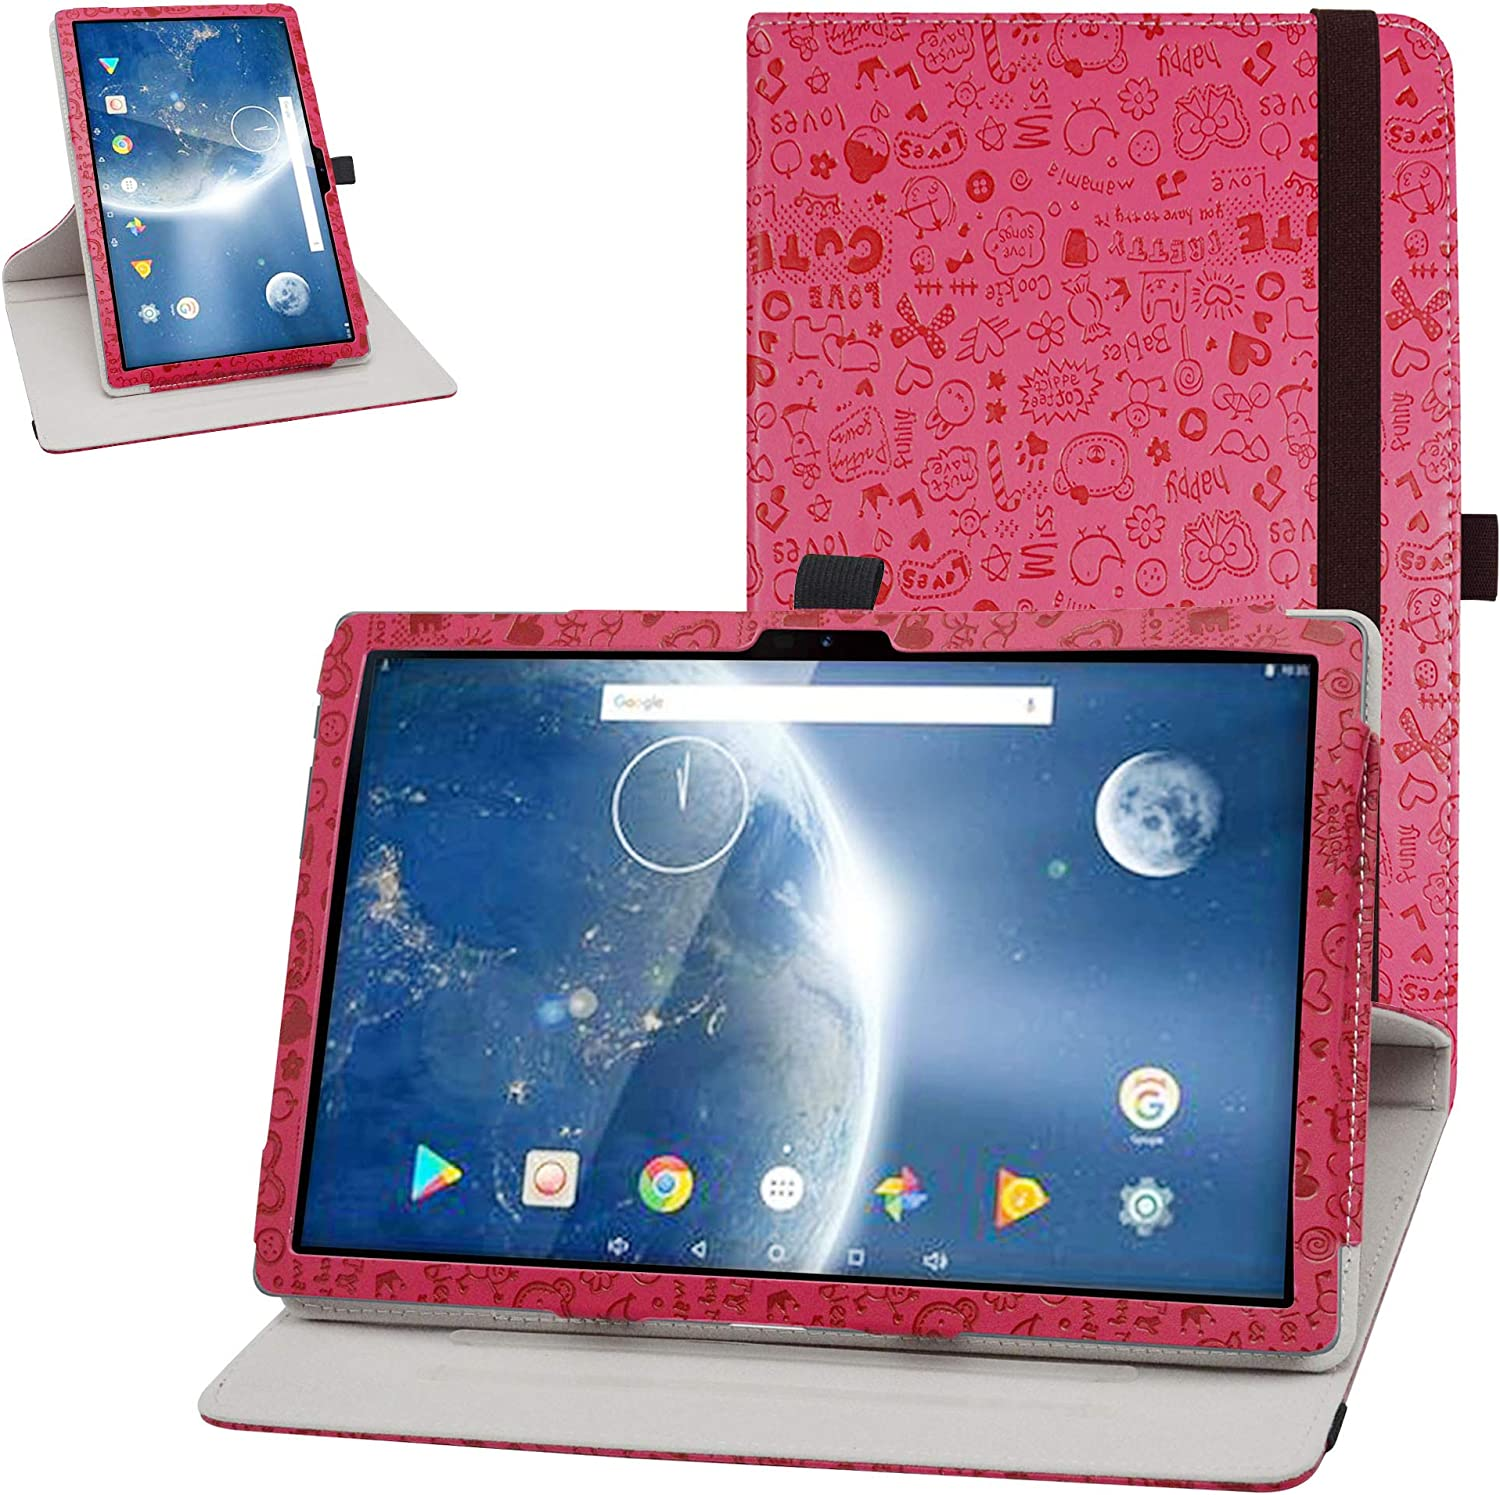 Bige for Dragon Touch Notepad 102 Case,360 Degree Rotary Stand with Cute Pattern Cover for 10.1